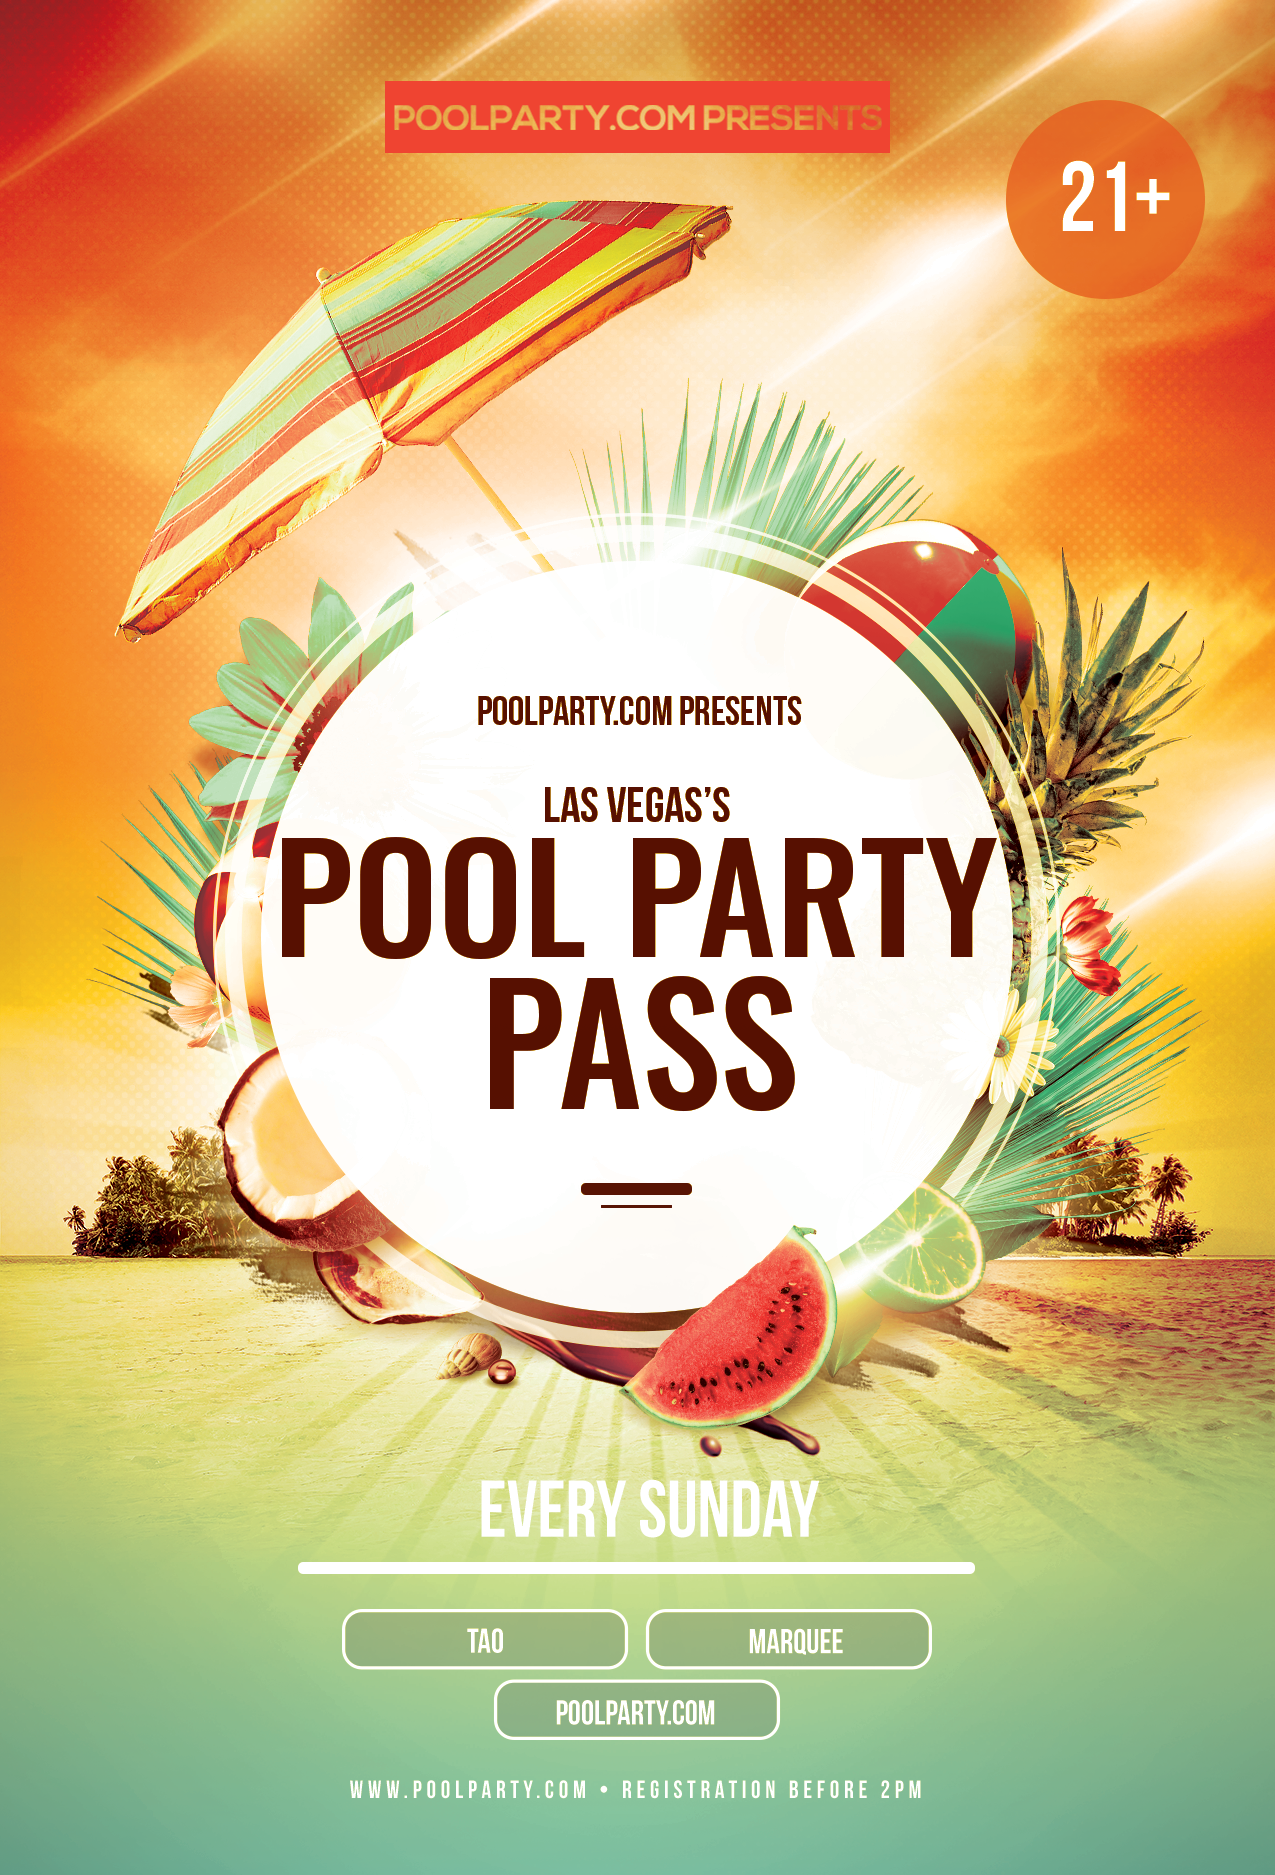 Sunday's Las Vegas Pool Party Pass, Tao Beach and Marquee (April 5th 2020)